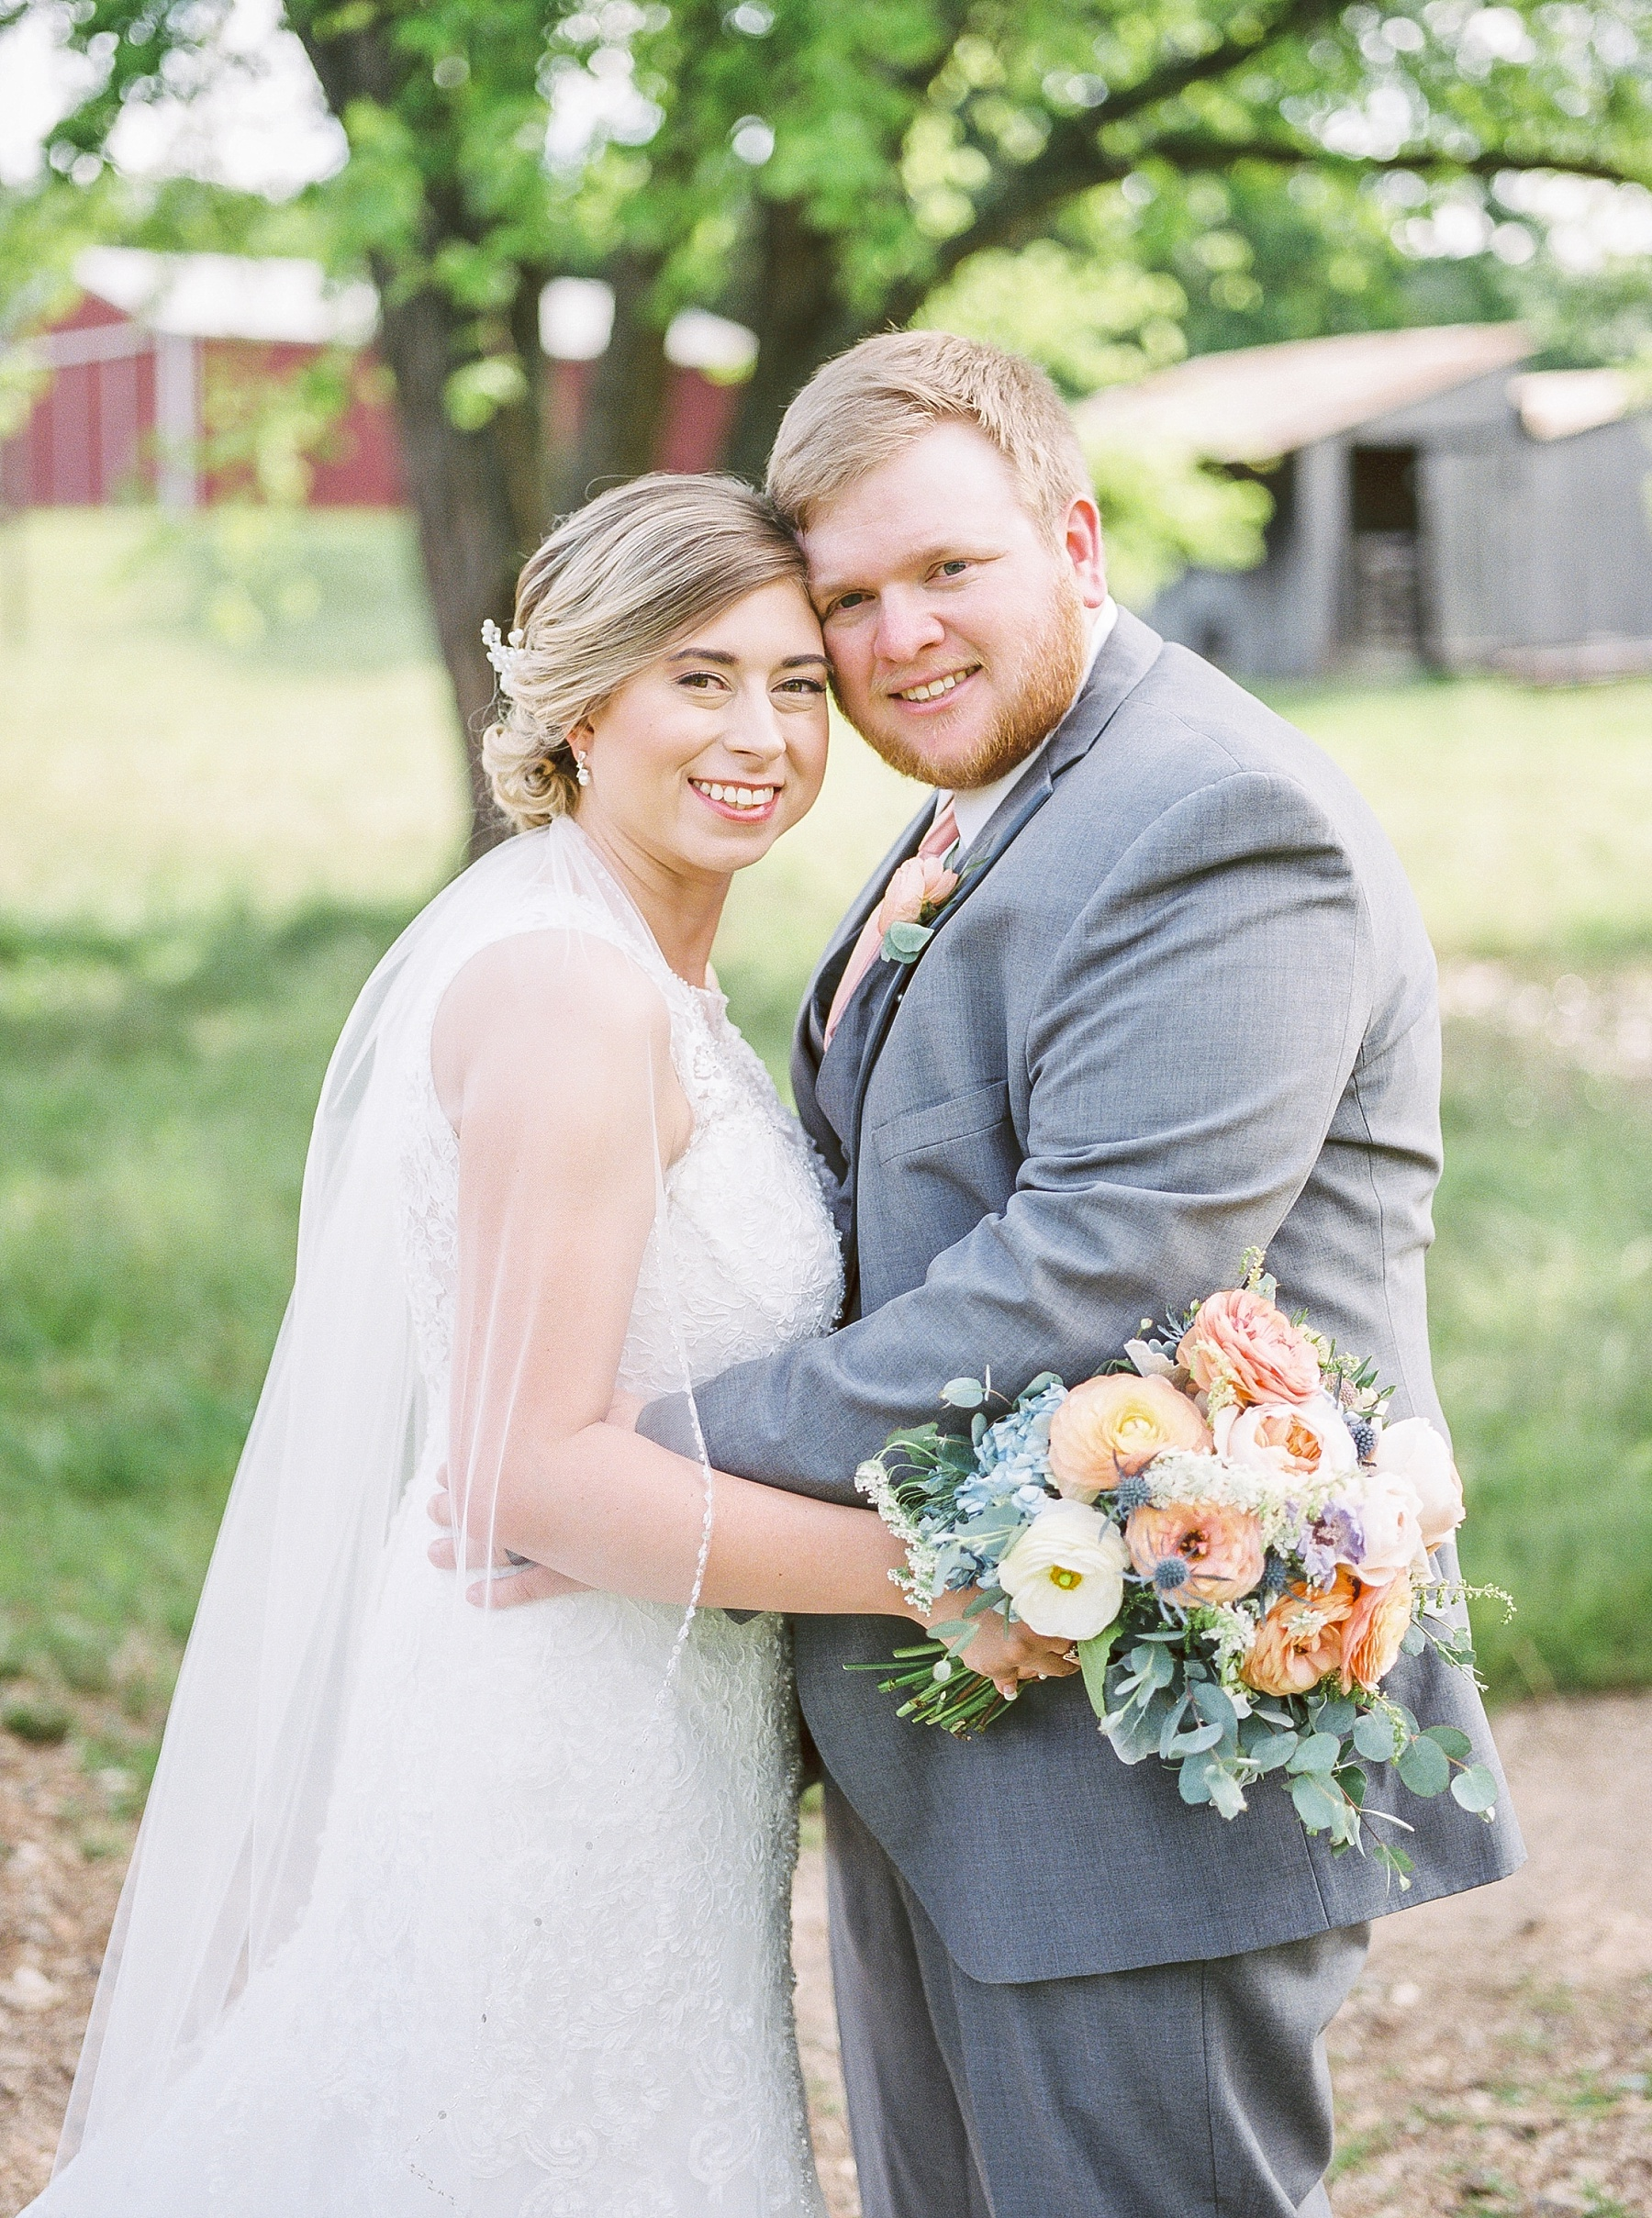 Peach and Dusty Blue Spring Wedding in Rolling Hills of Mid Missouri by Kelsi Kliethermes Photography Best Missouri and Maui Wedding Photographer_0048.jpg